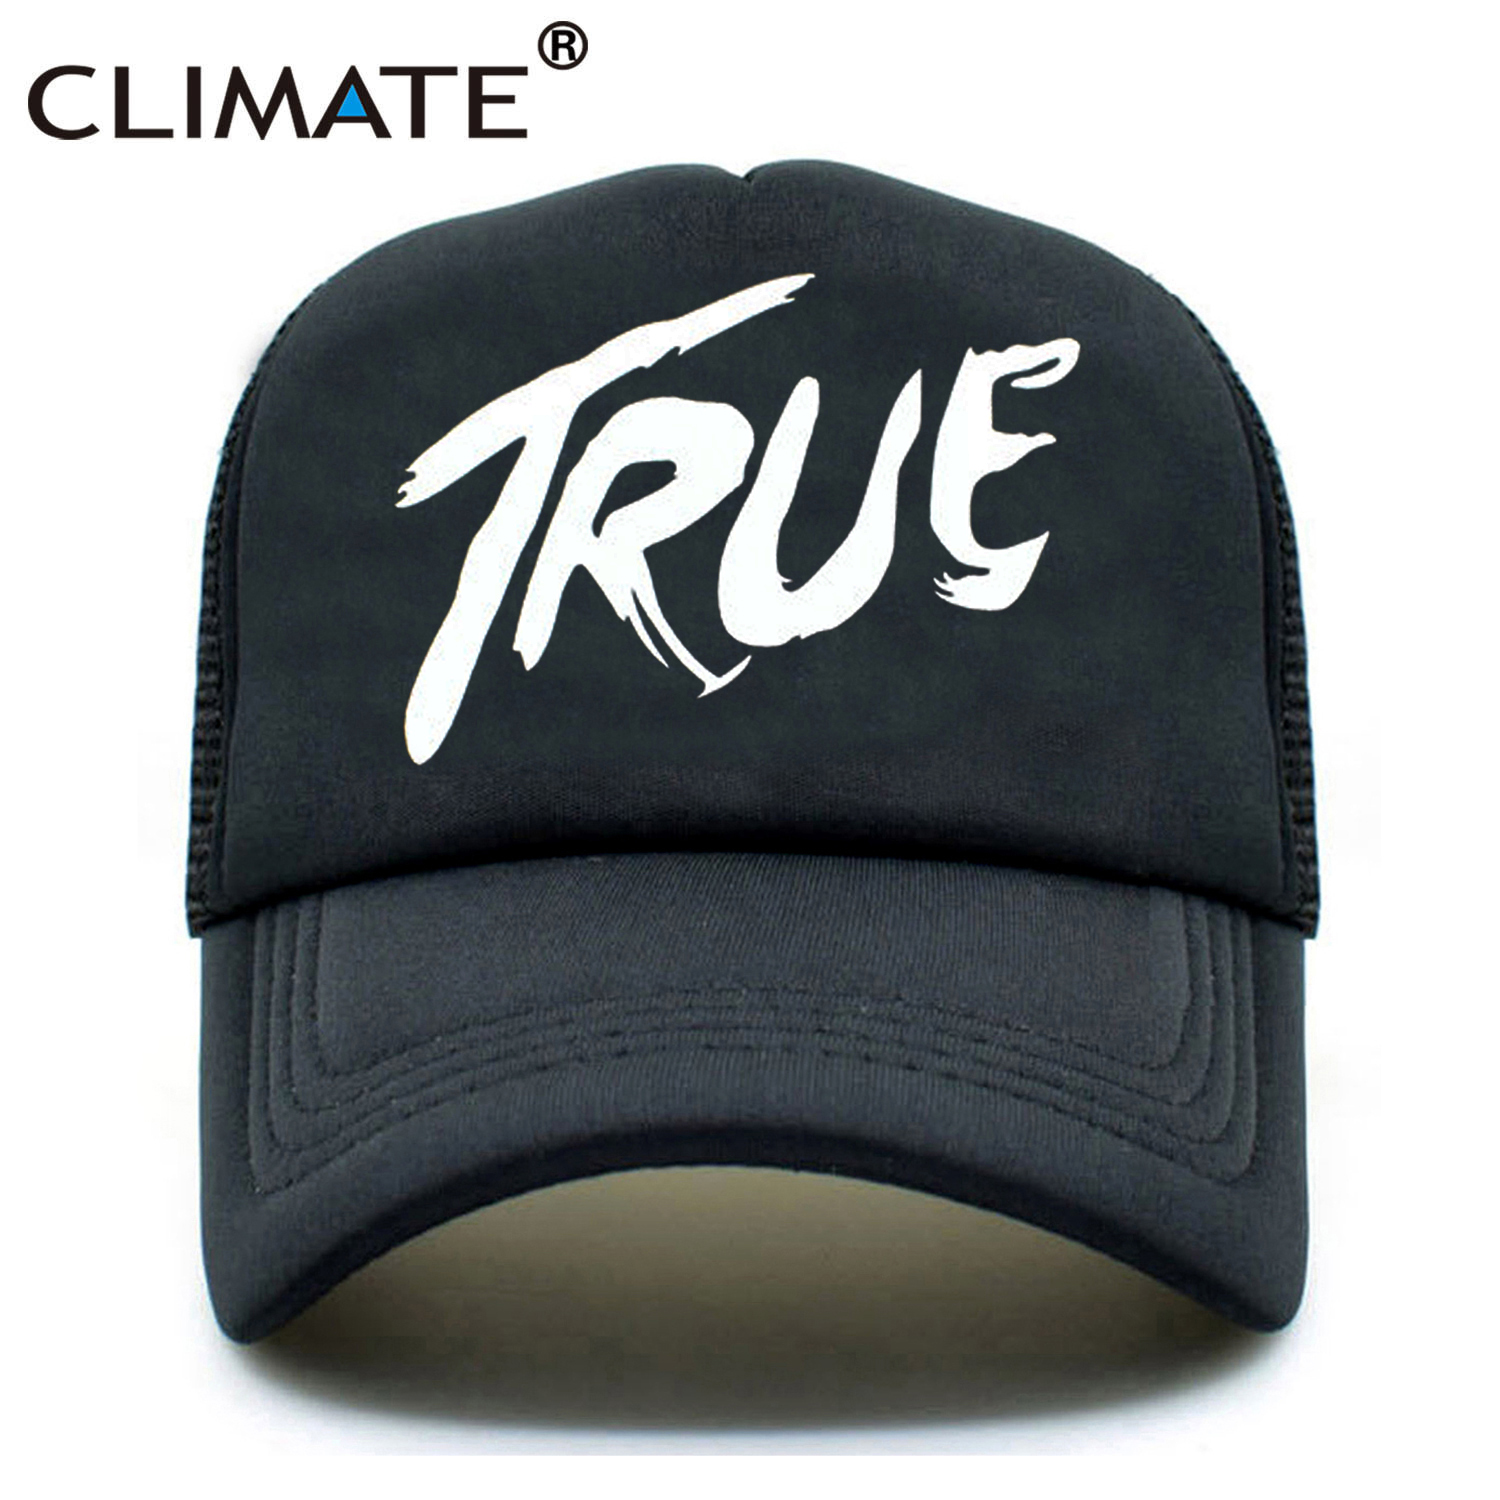 CLIMATE Men Women New Trucker Caps AVICII TRUE Hot Music DJ Caps Hot Summer Music AVICII Fans Baseball Mesh Net Trucker Cap Hat climate men summer black mesh caps star wars bounty hunter fans cool summer baseball cap black net trucker caps hat for men